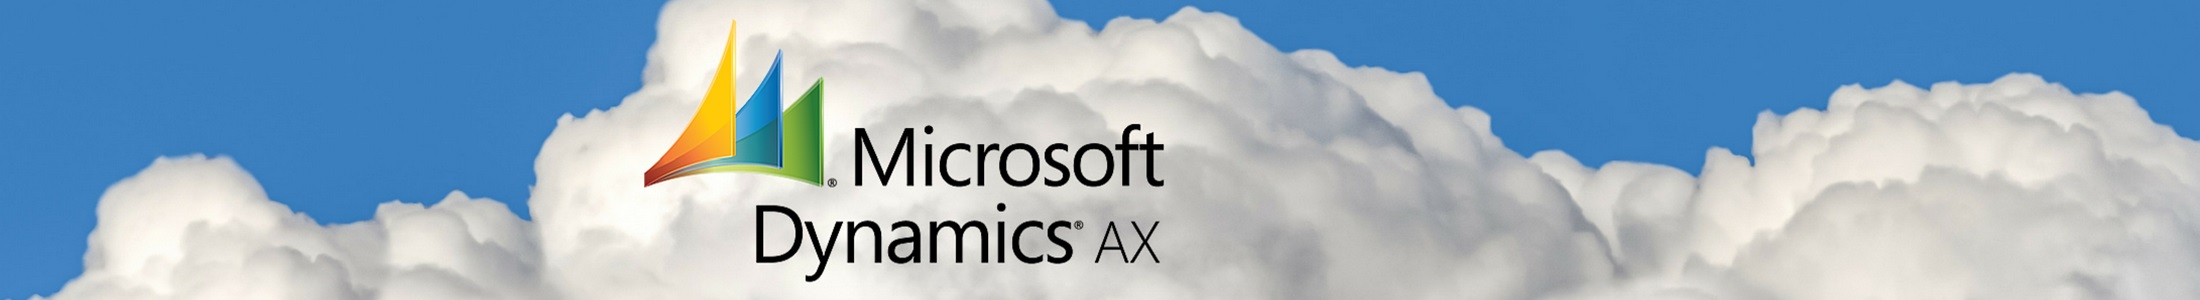 microsoft dynamics ax cloud